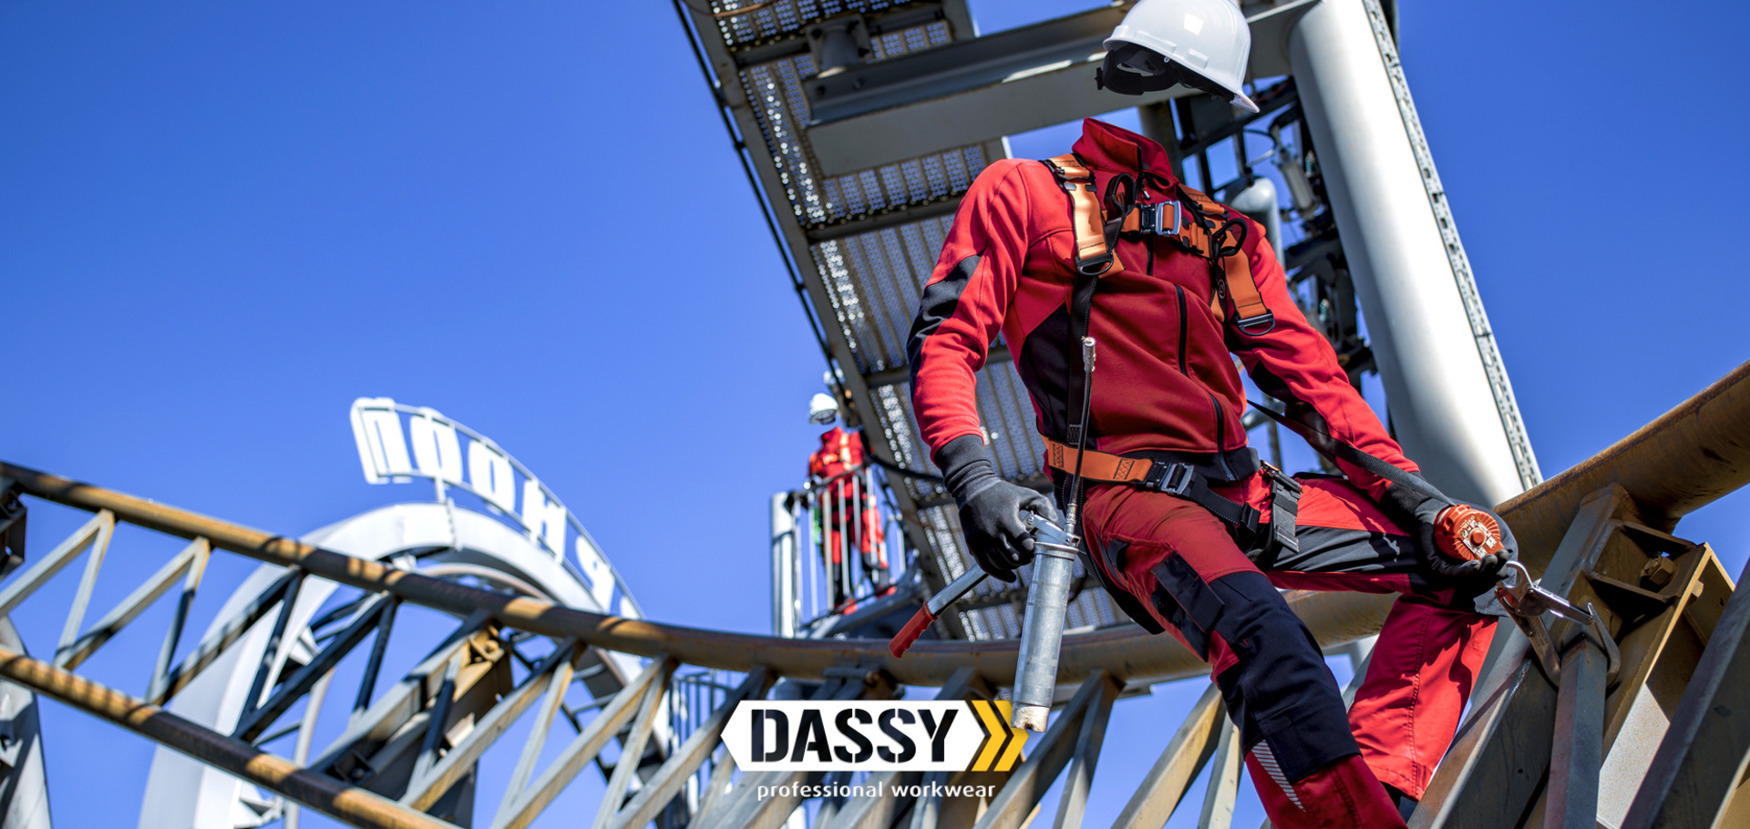 Shop DASSY D-flex - New collection#Discover the entire DASSY D-FLEX collection